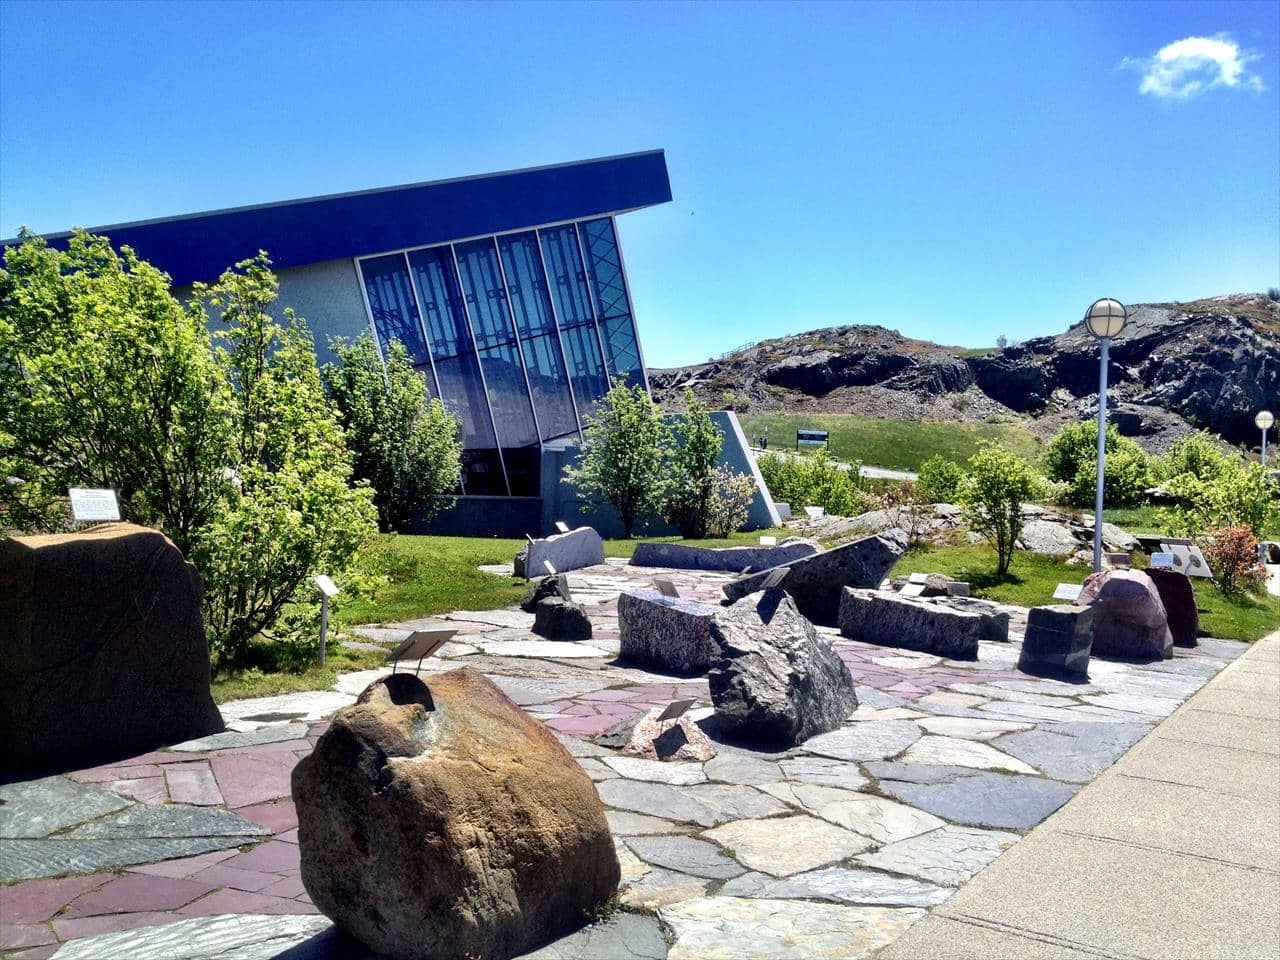 The Johnson Geo Centre, St. John's, Newfoundland and Labrador